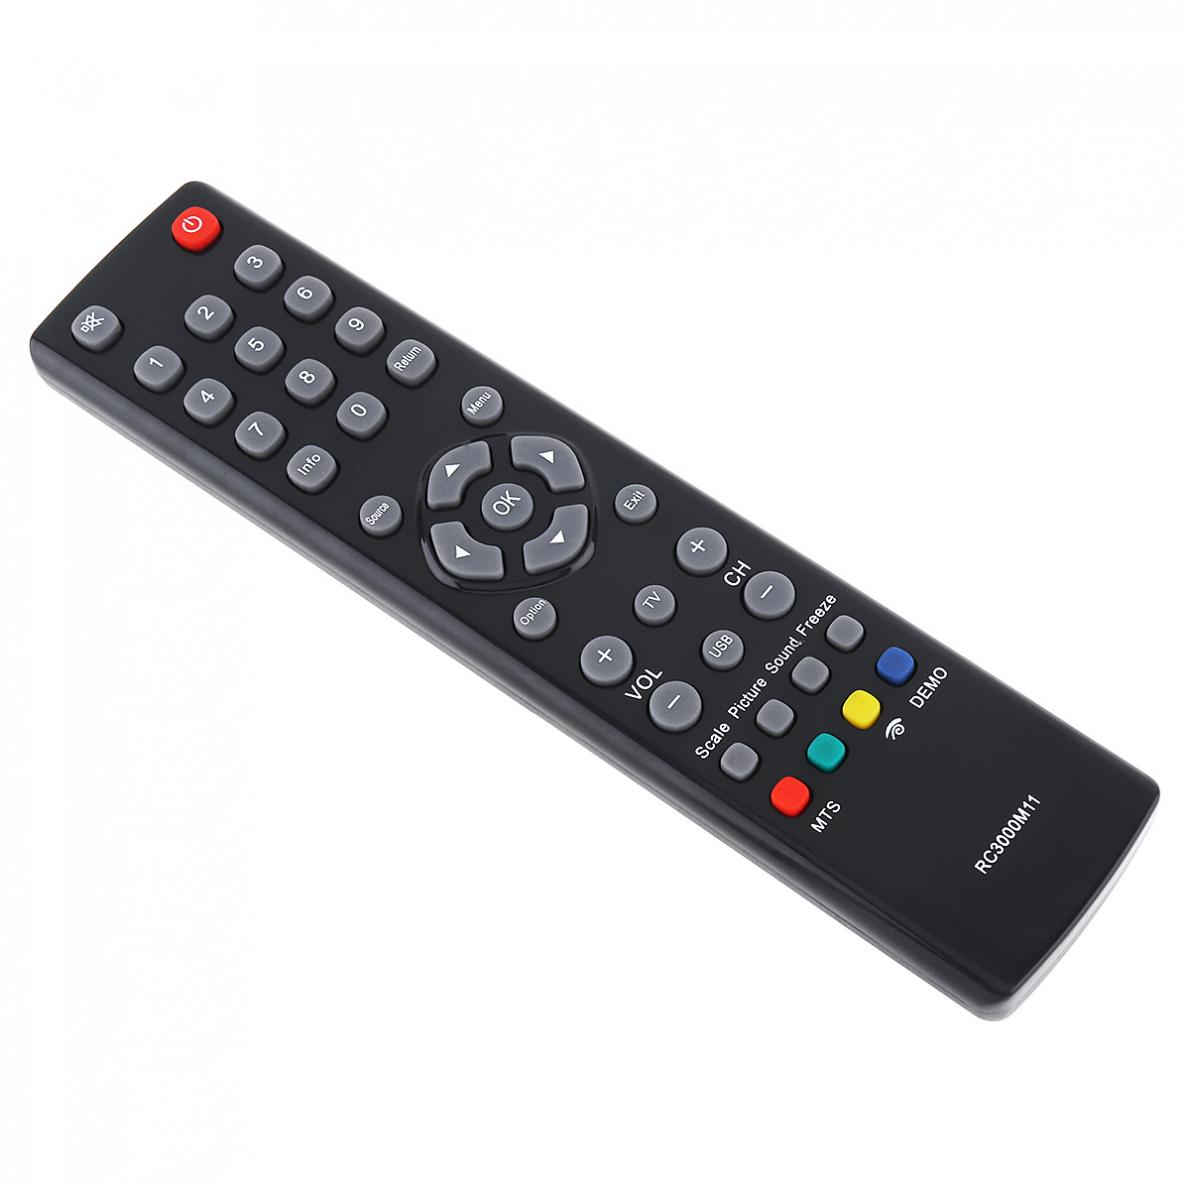 IR 433Mhz TV Remote Control with Long Control Distance for TCL RC3000M11 2019 New in Remote Controls from Consumer Electronics